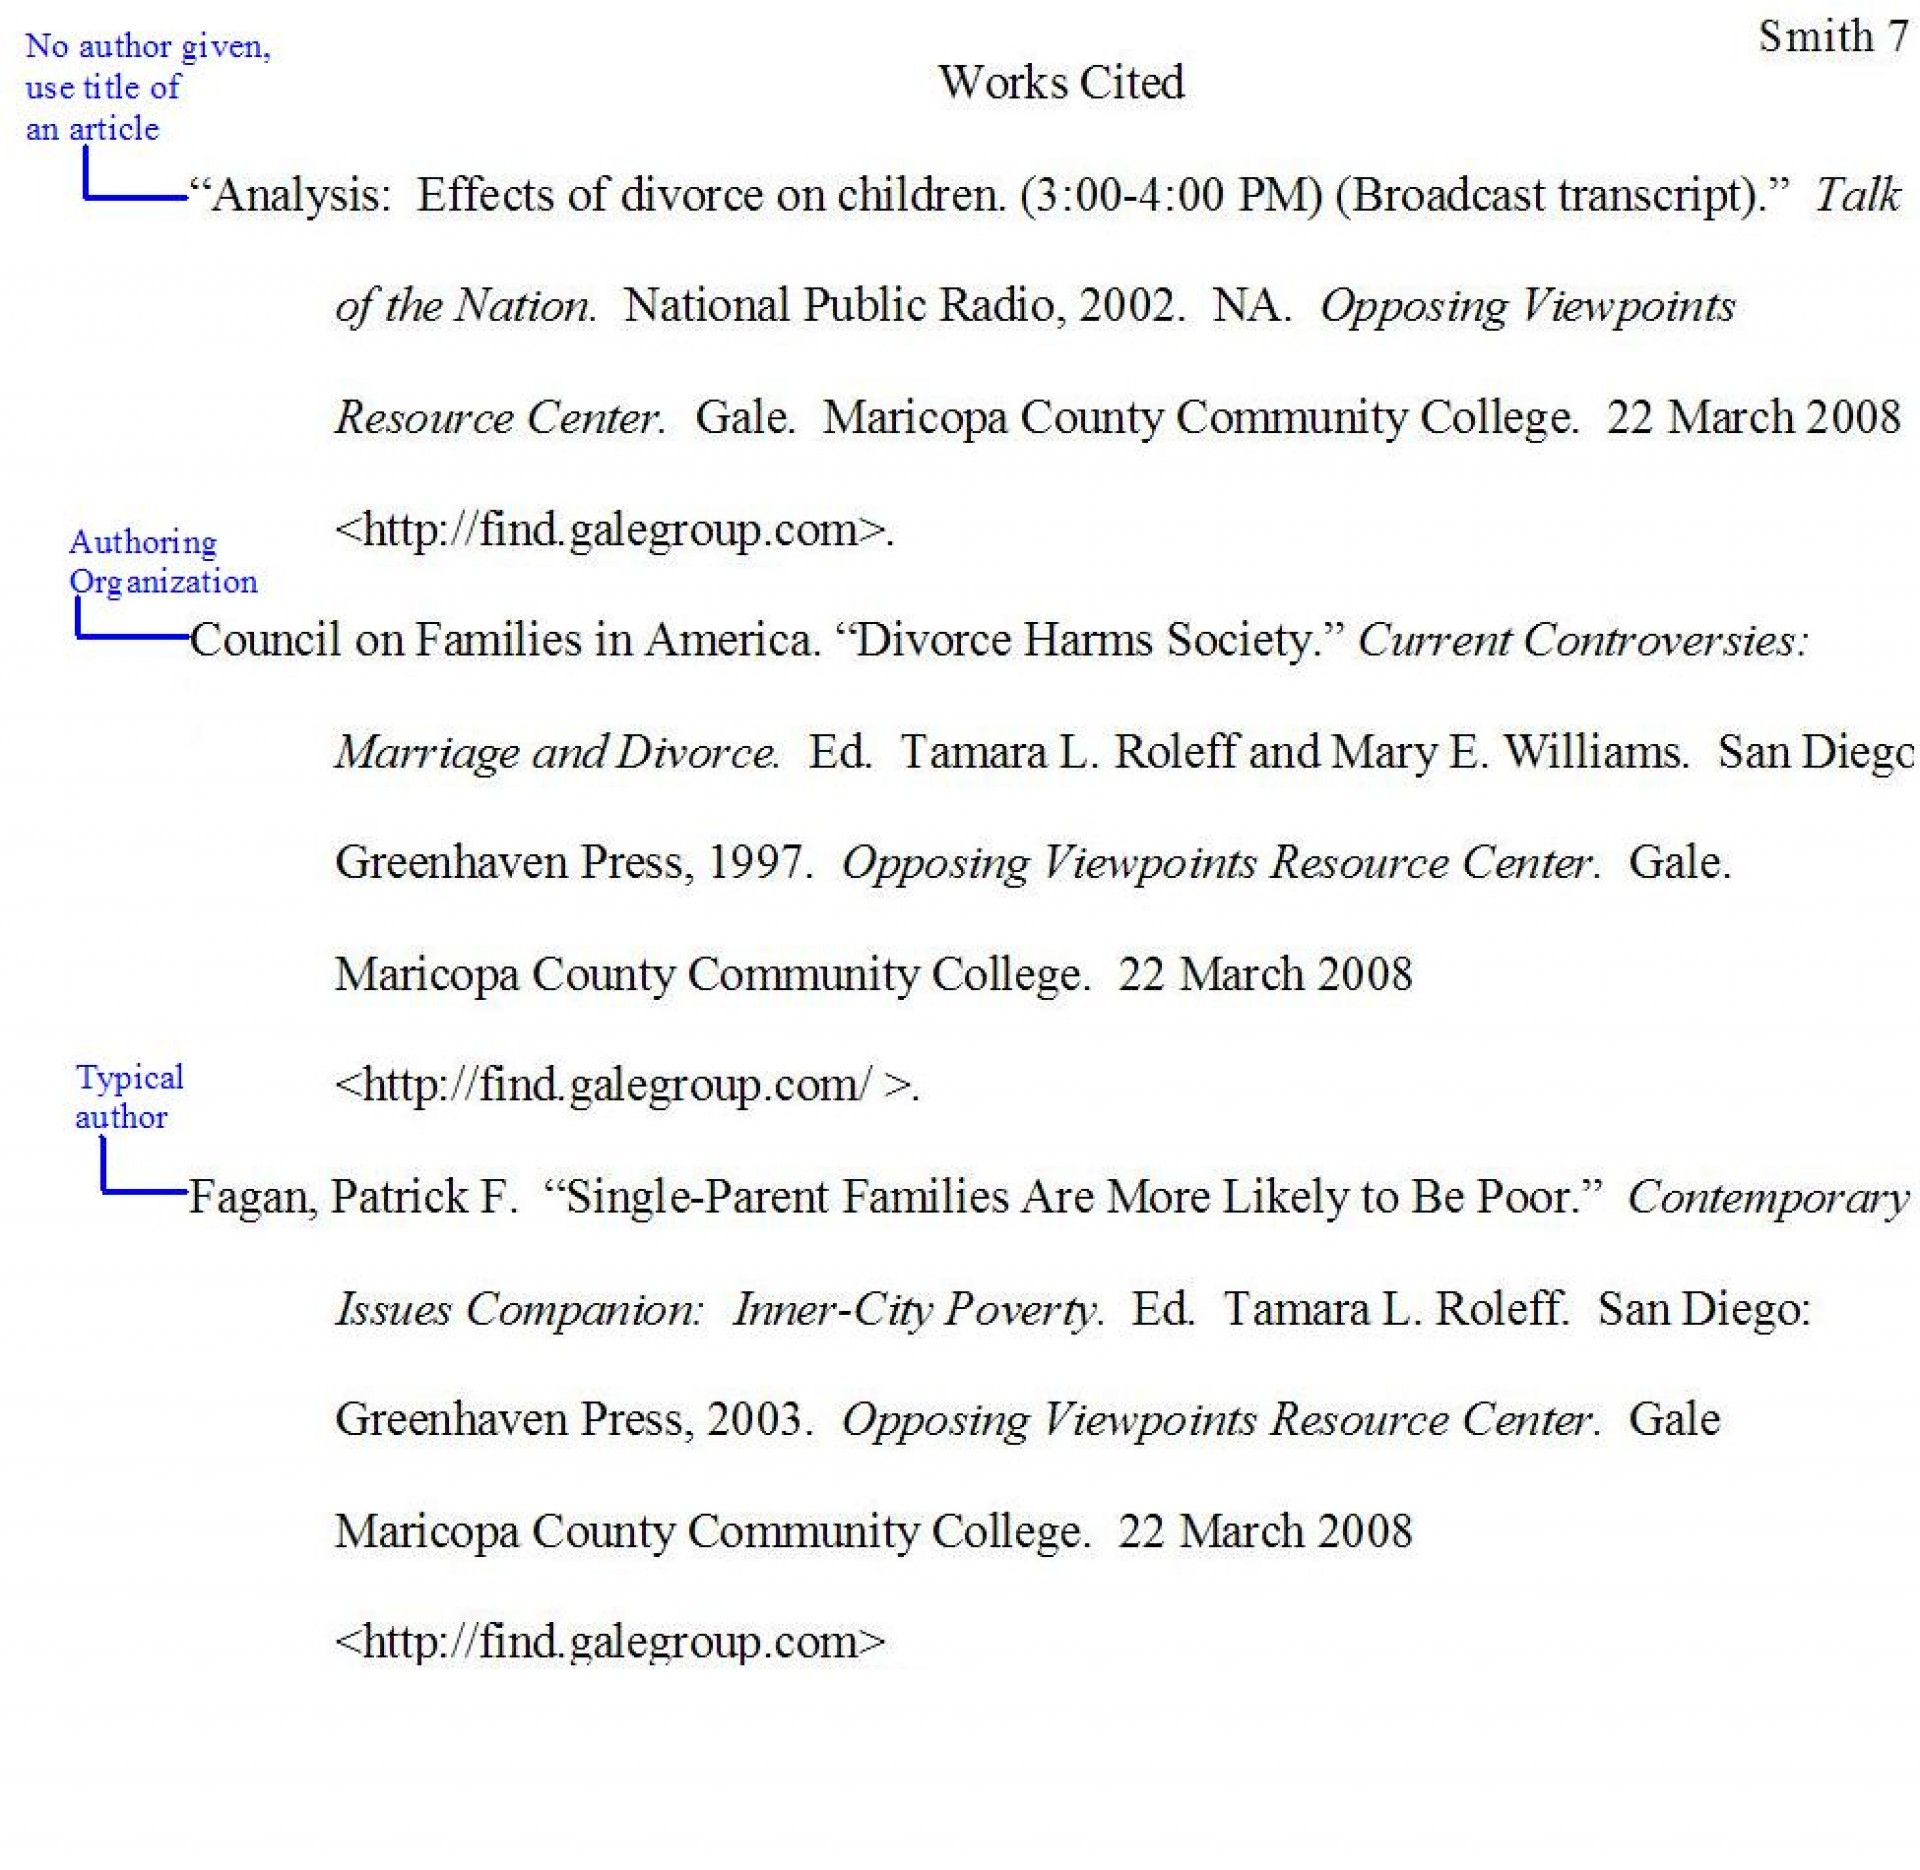 011 Mla Works Cited Image Research Paper Parenthetical